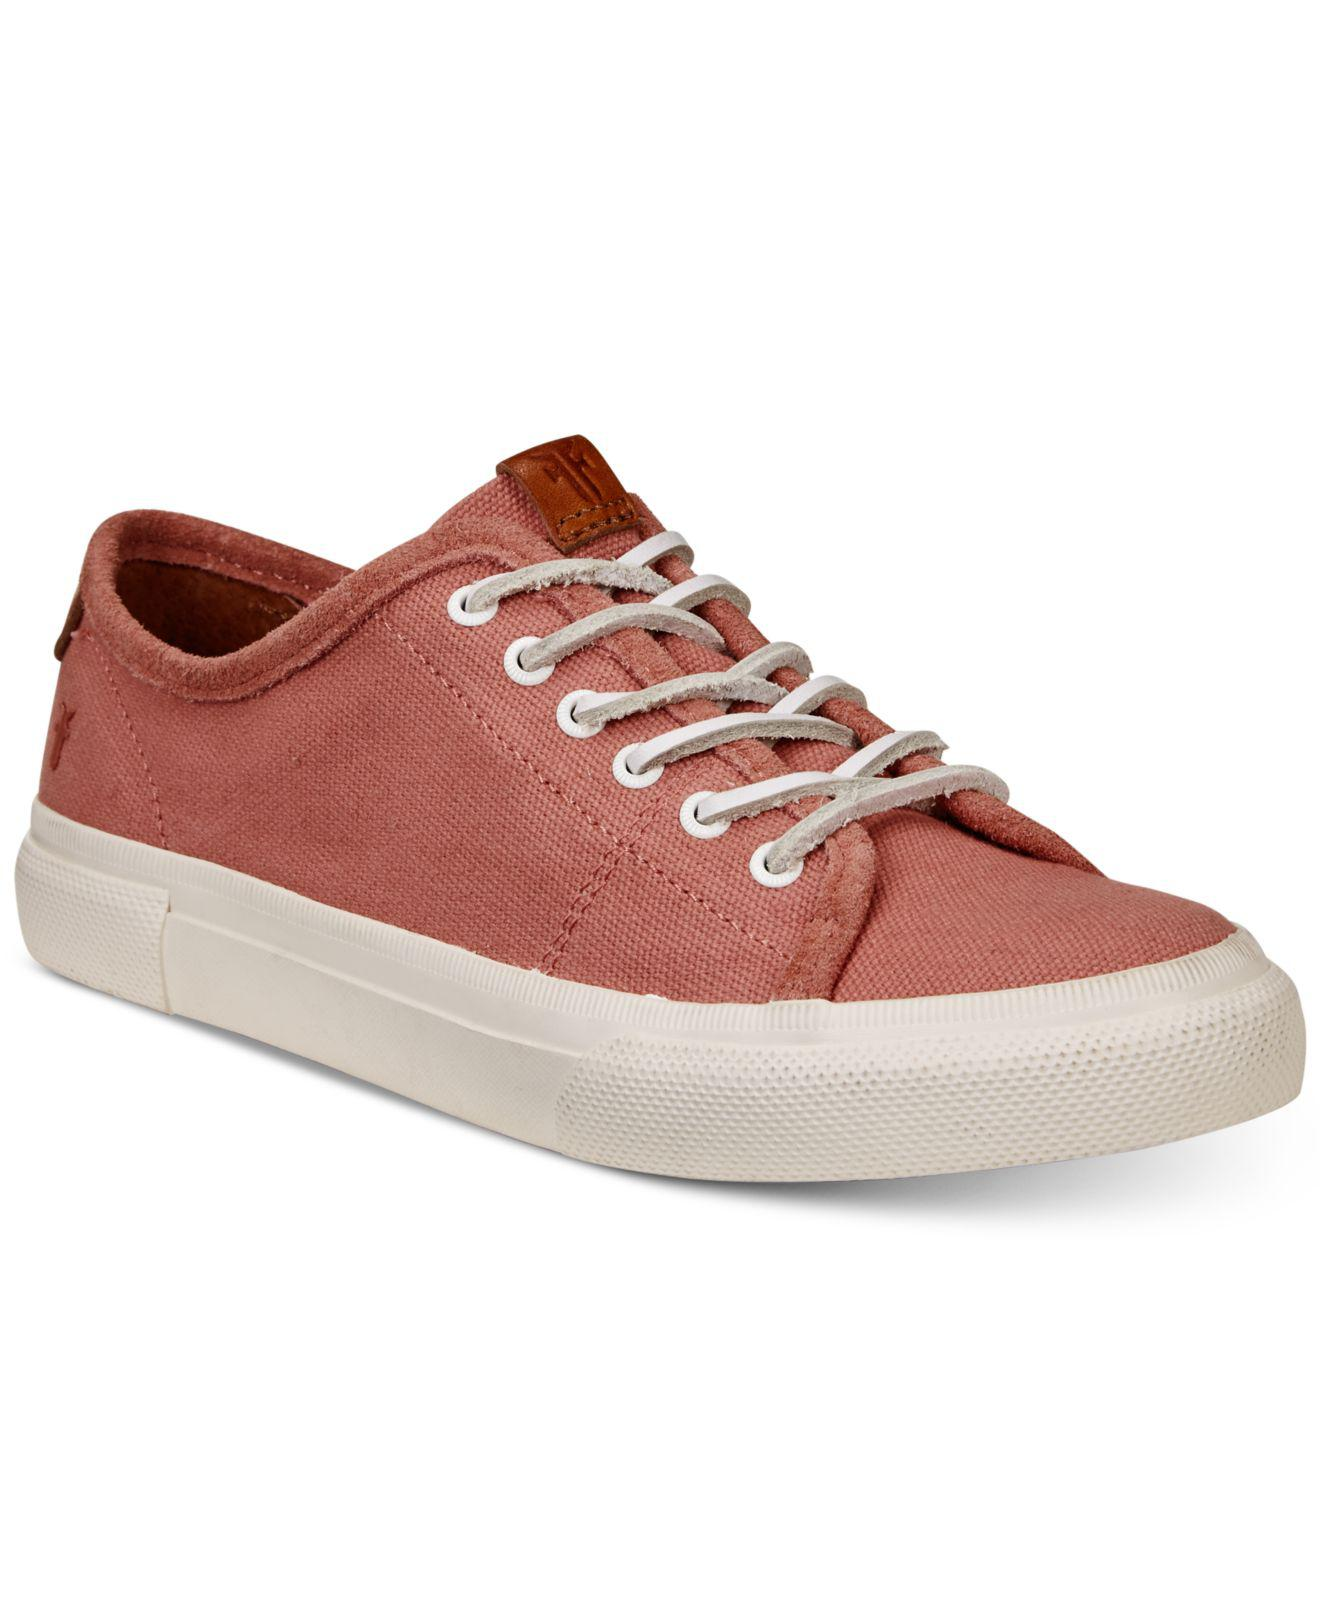 Frye Gia Canvas Lace Sneakers Women's Shoes